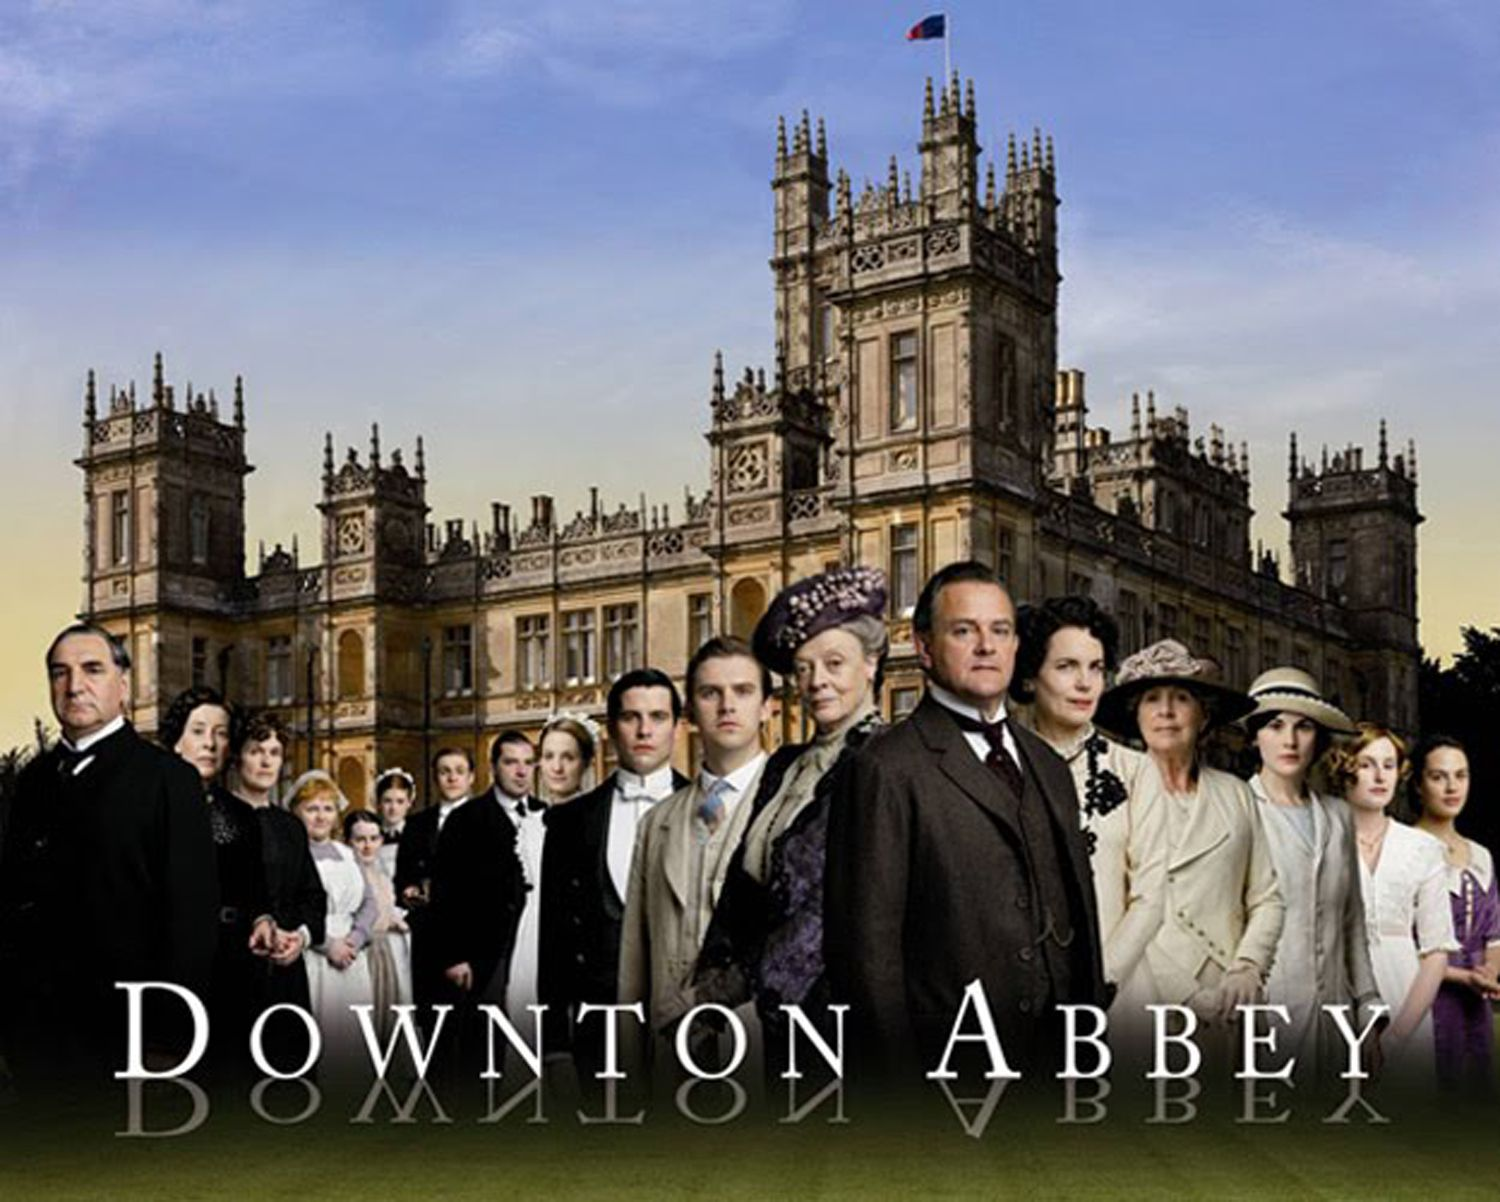 Downton Abbey (2010–2015)